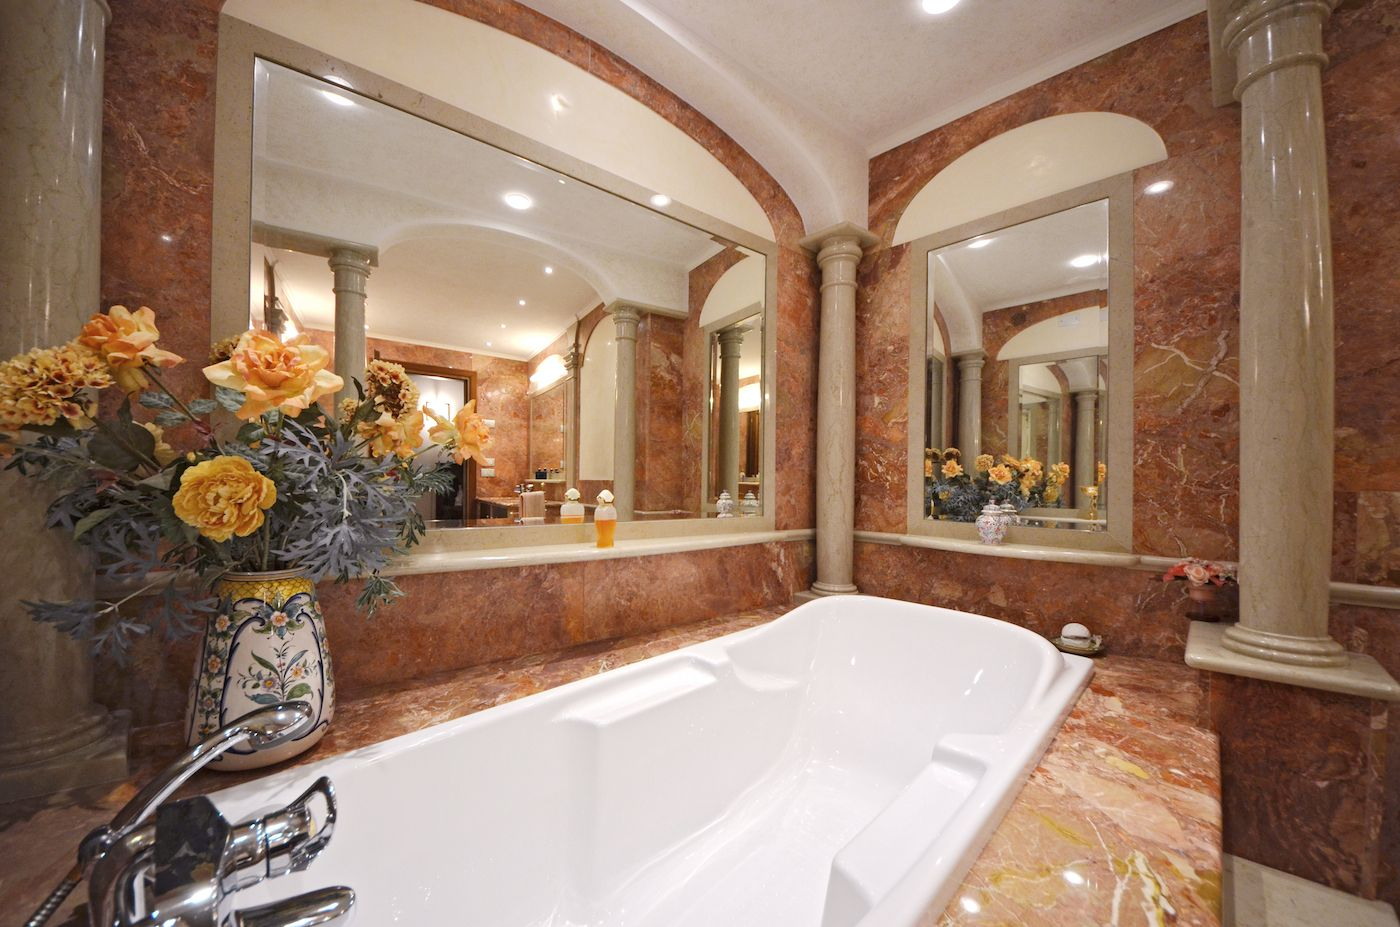 the bathtub of the master bathroom is a real treat